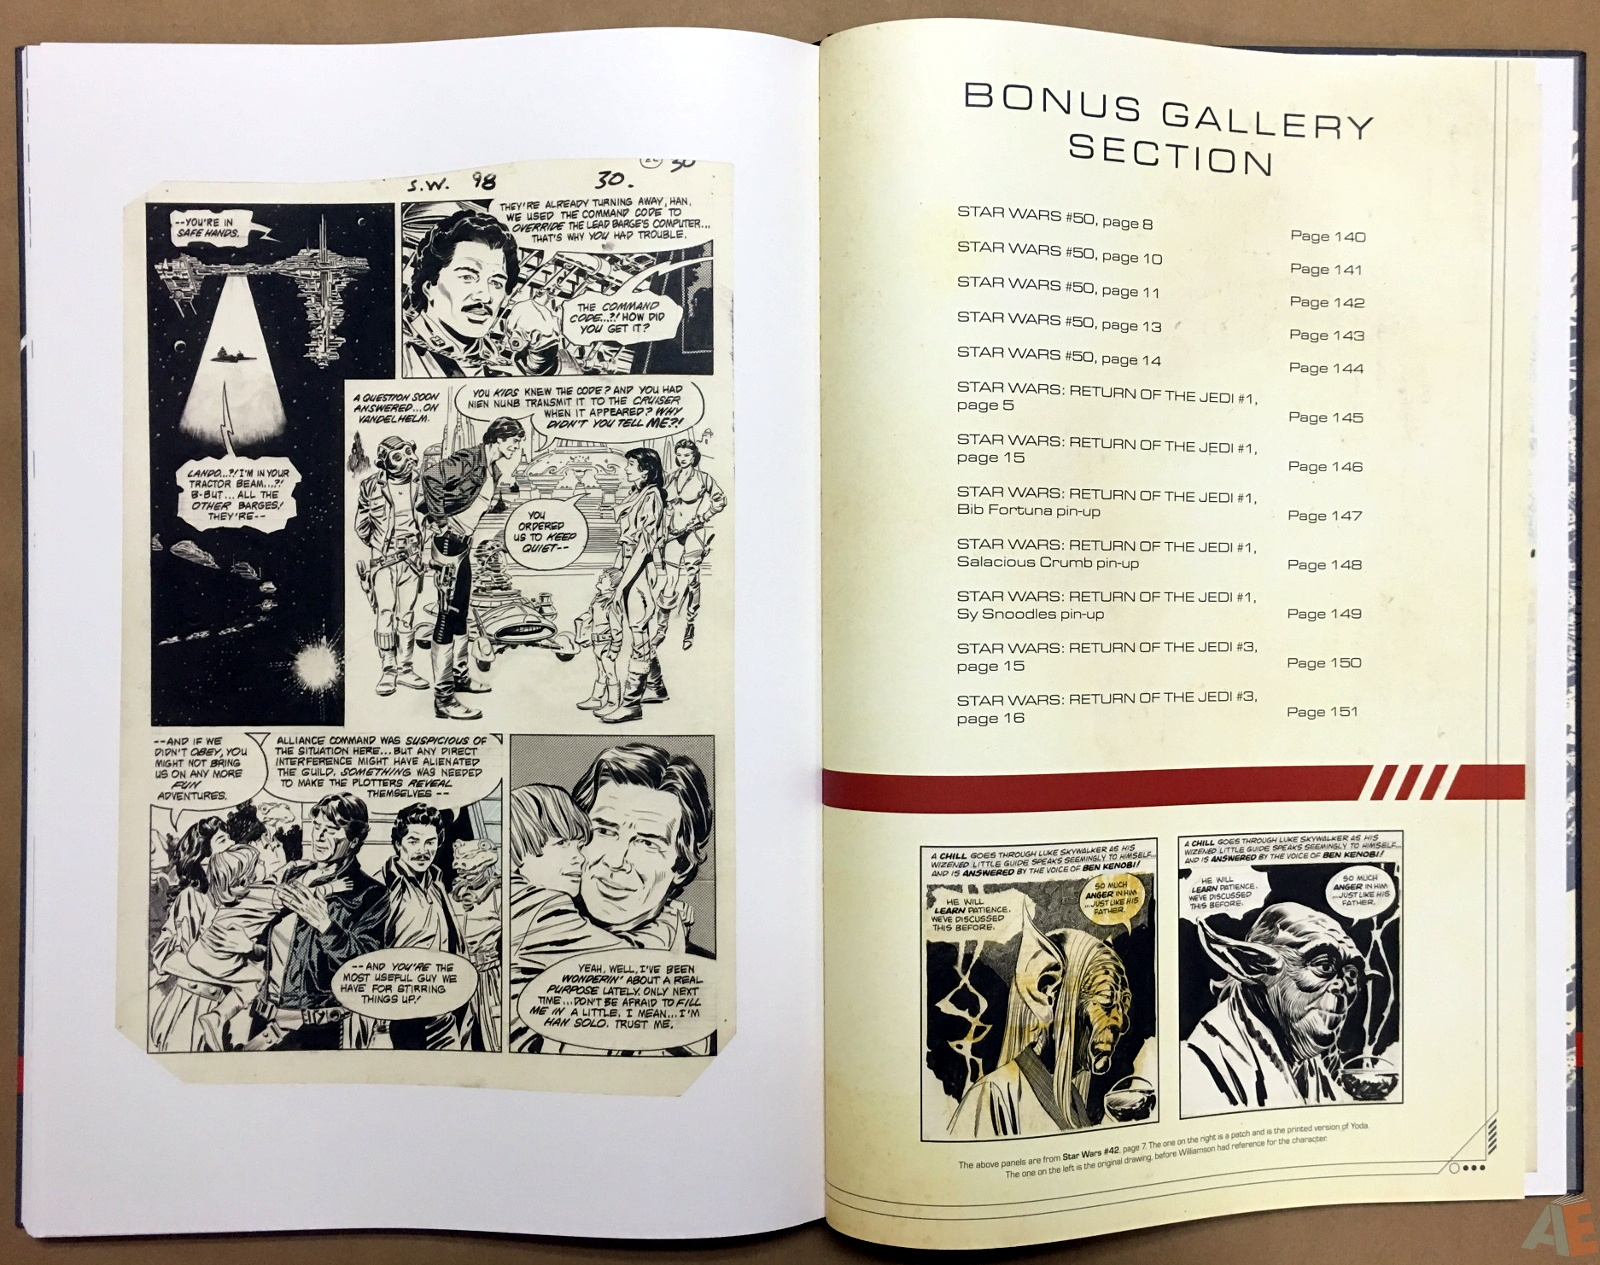 Al Williamson's Star Wars: The Empire Strikes Back Artist's Edition 44